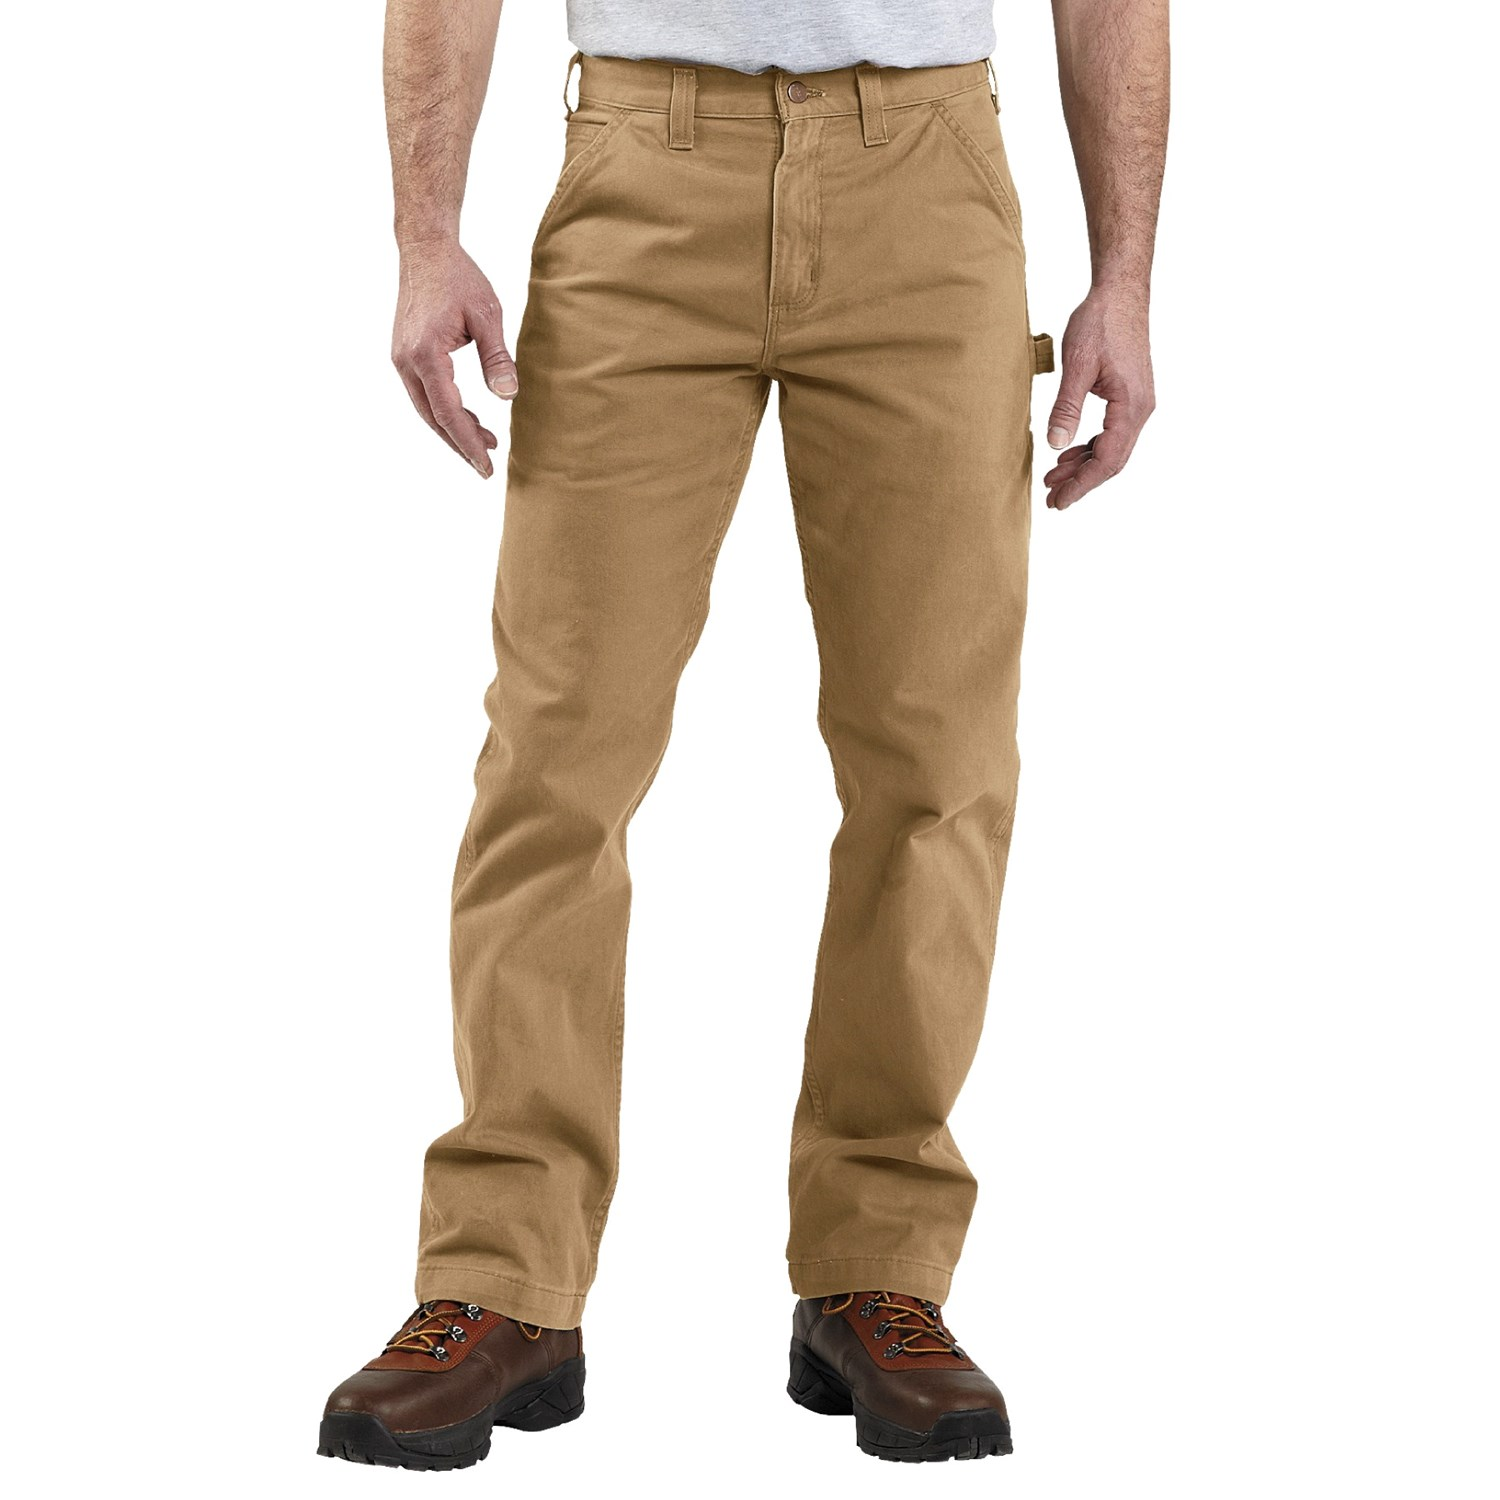 Twill Pants For Men